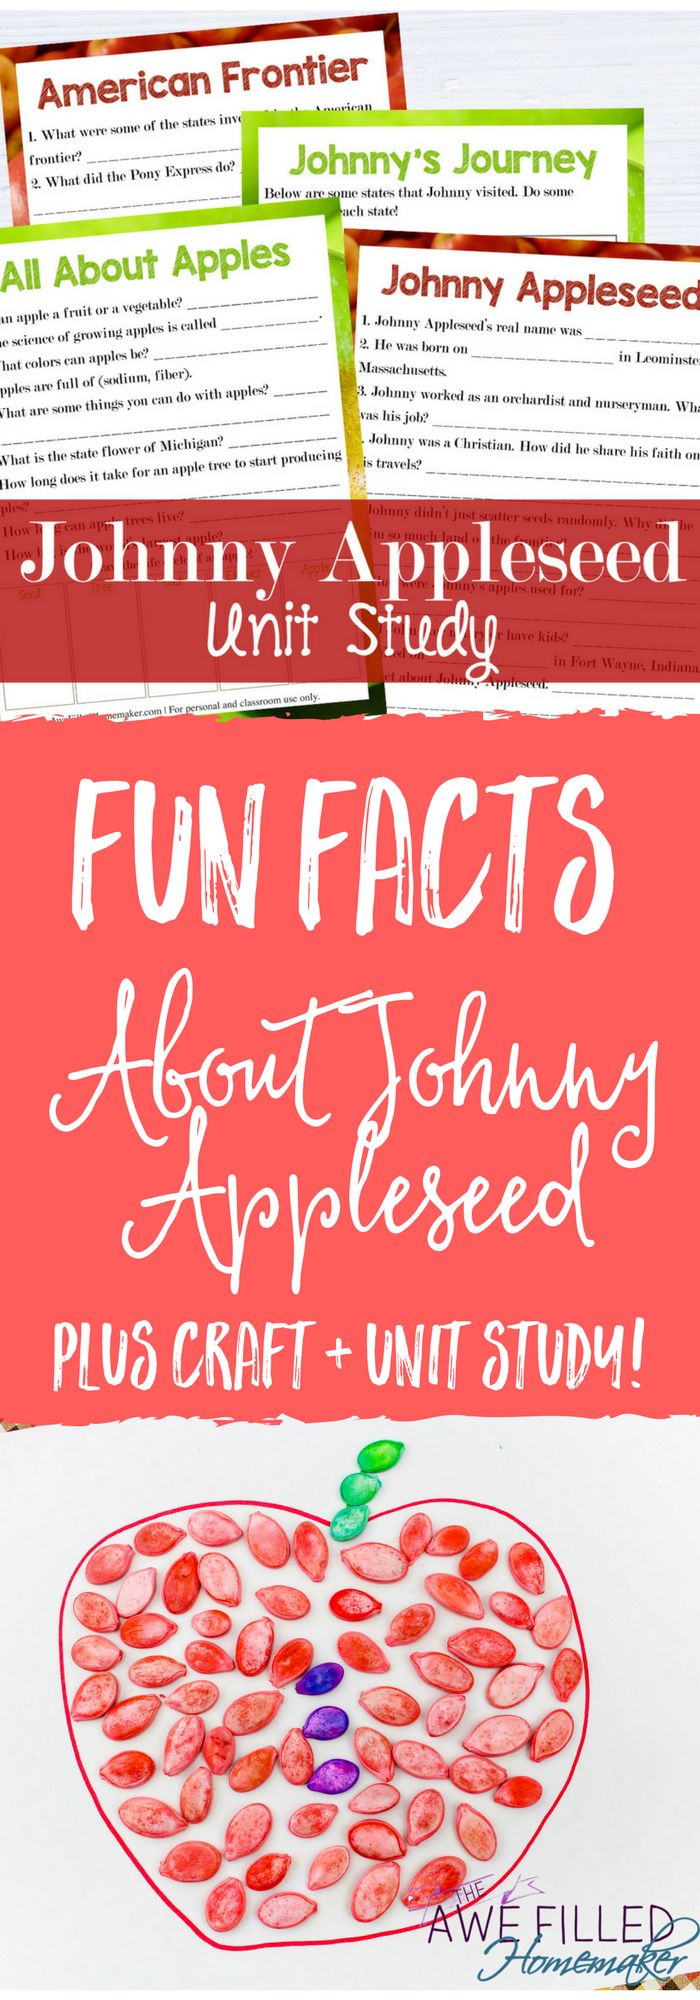 The story about Johnny Appleseed is as American as Apple Pie. Join us as we learn fun facts about his story, work through the unit study, and enjoy a craft!